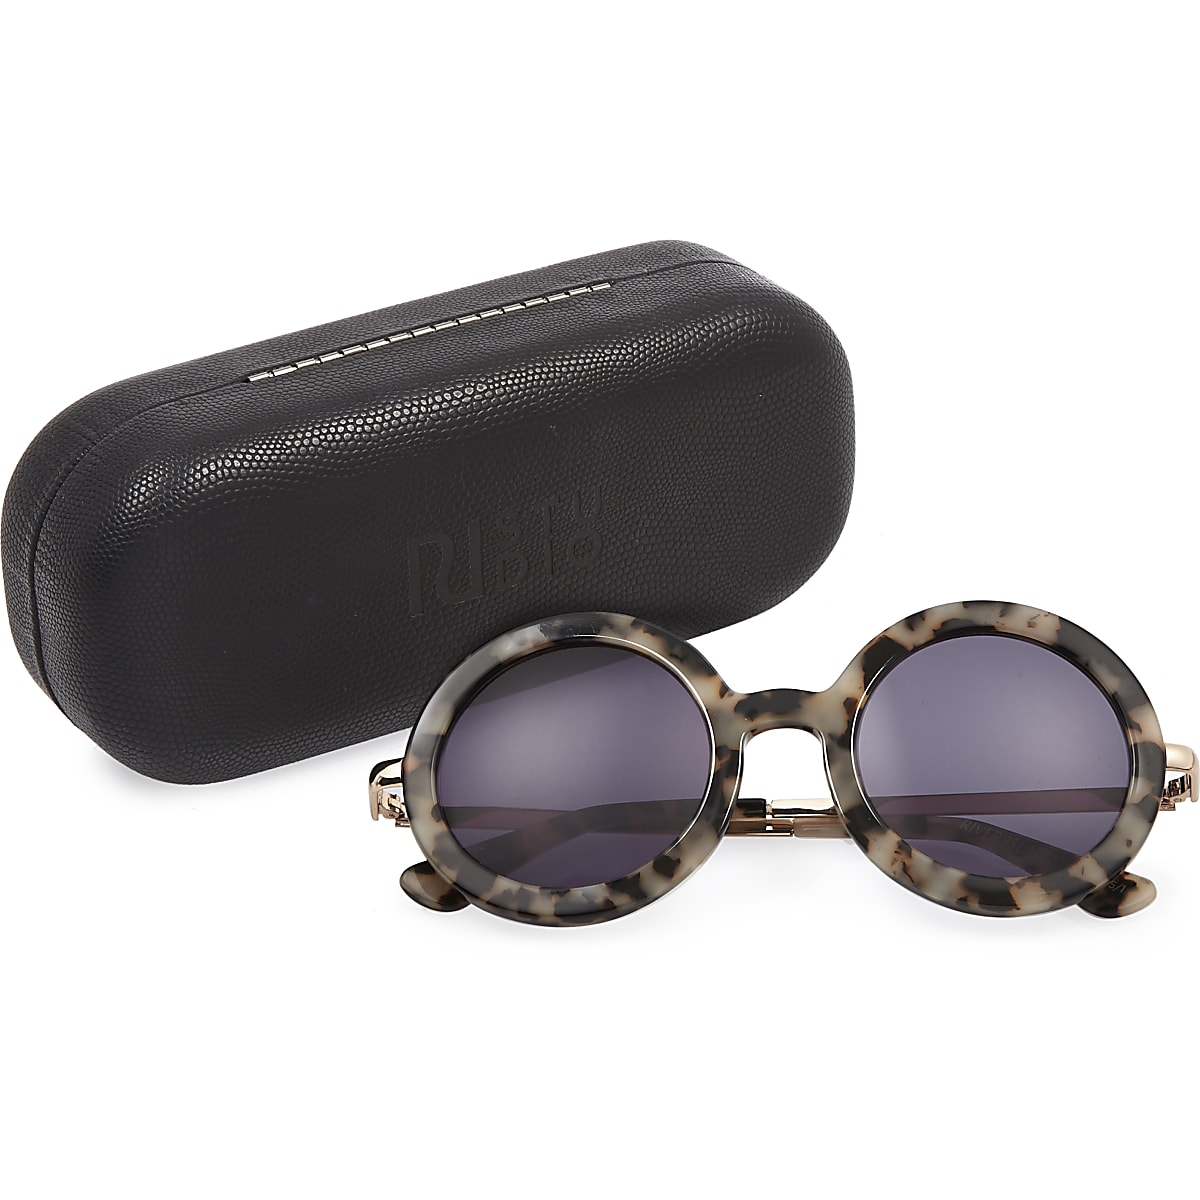 RI Studio cream print round sunglasses